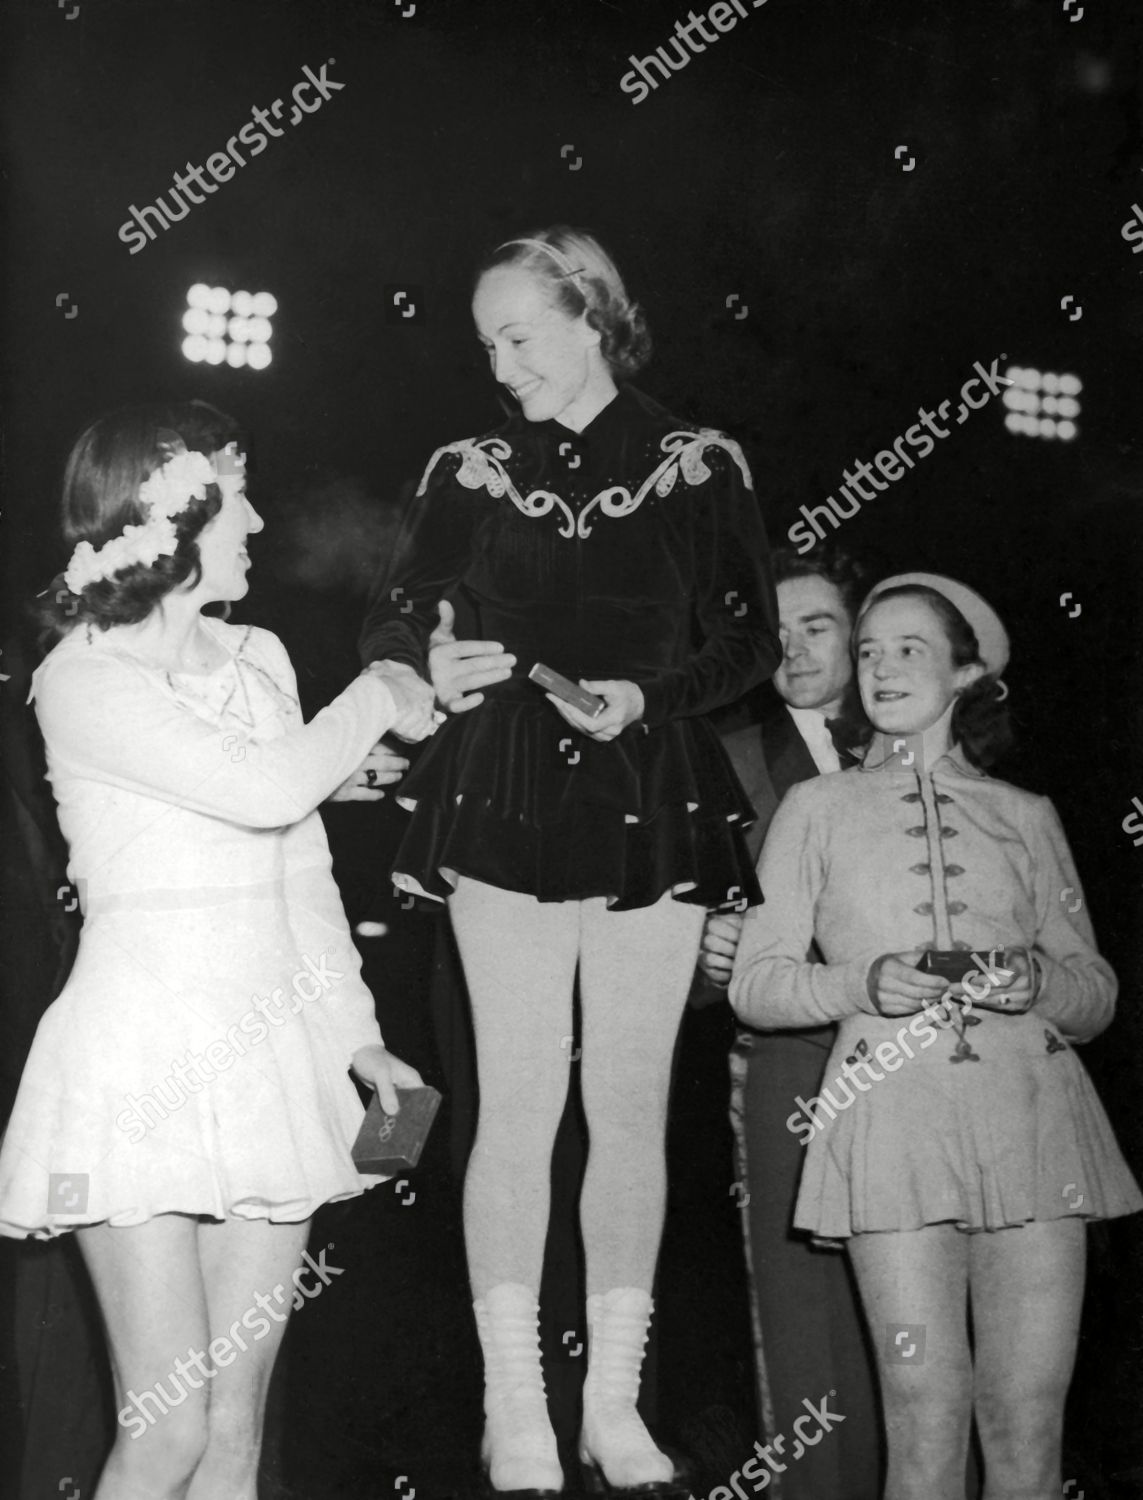 e9d693a9b81 winners presented their medals Pair Figure Skating Editorial Stock ...